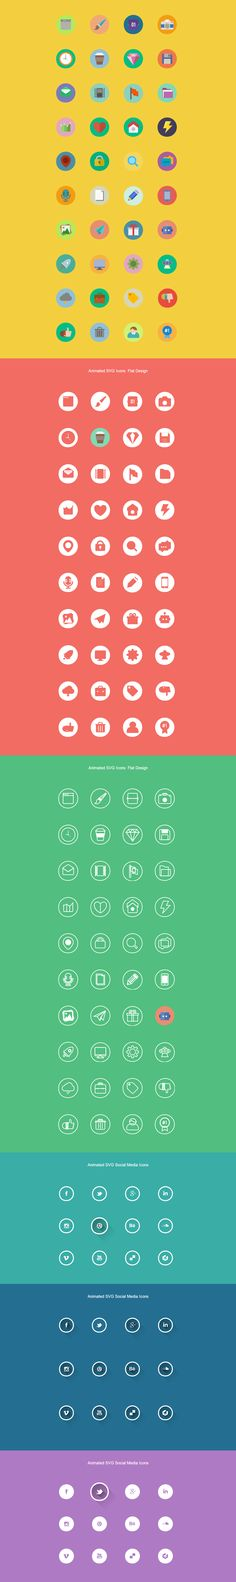 free-animated-svg-icons http://www.pencilscoop.com/2013/12/150-free-animated-svg-icons/